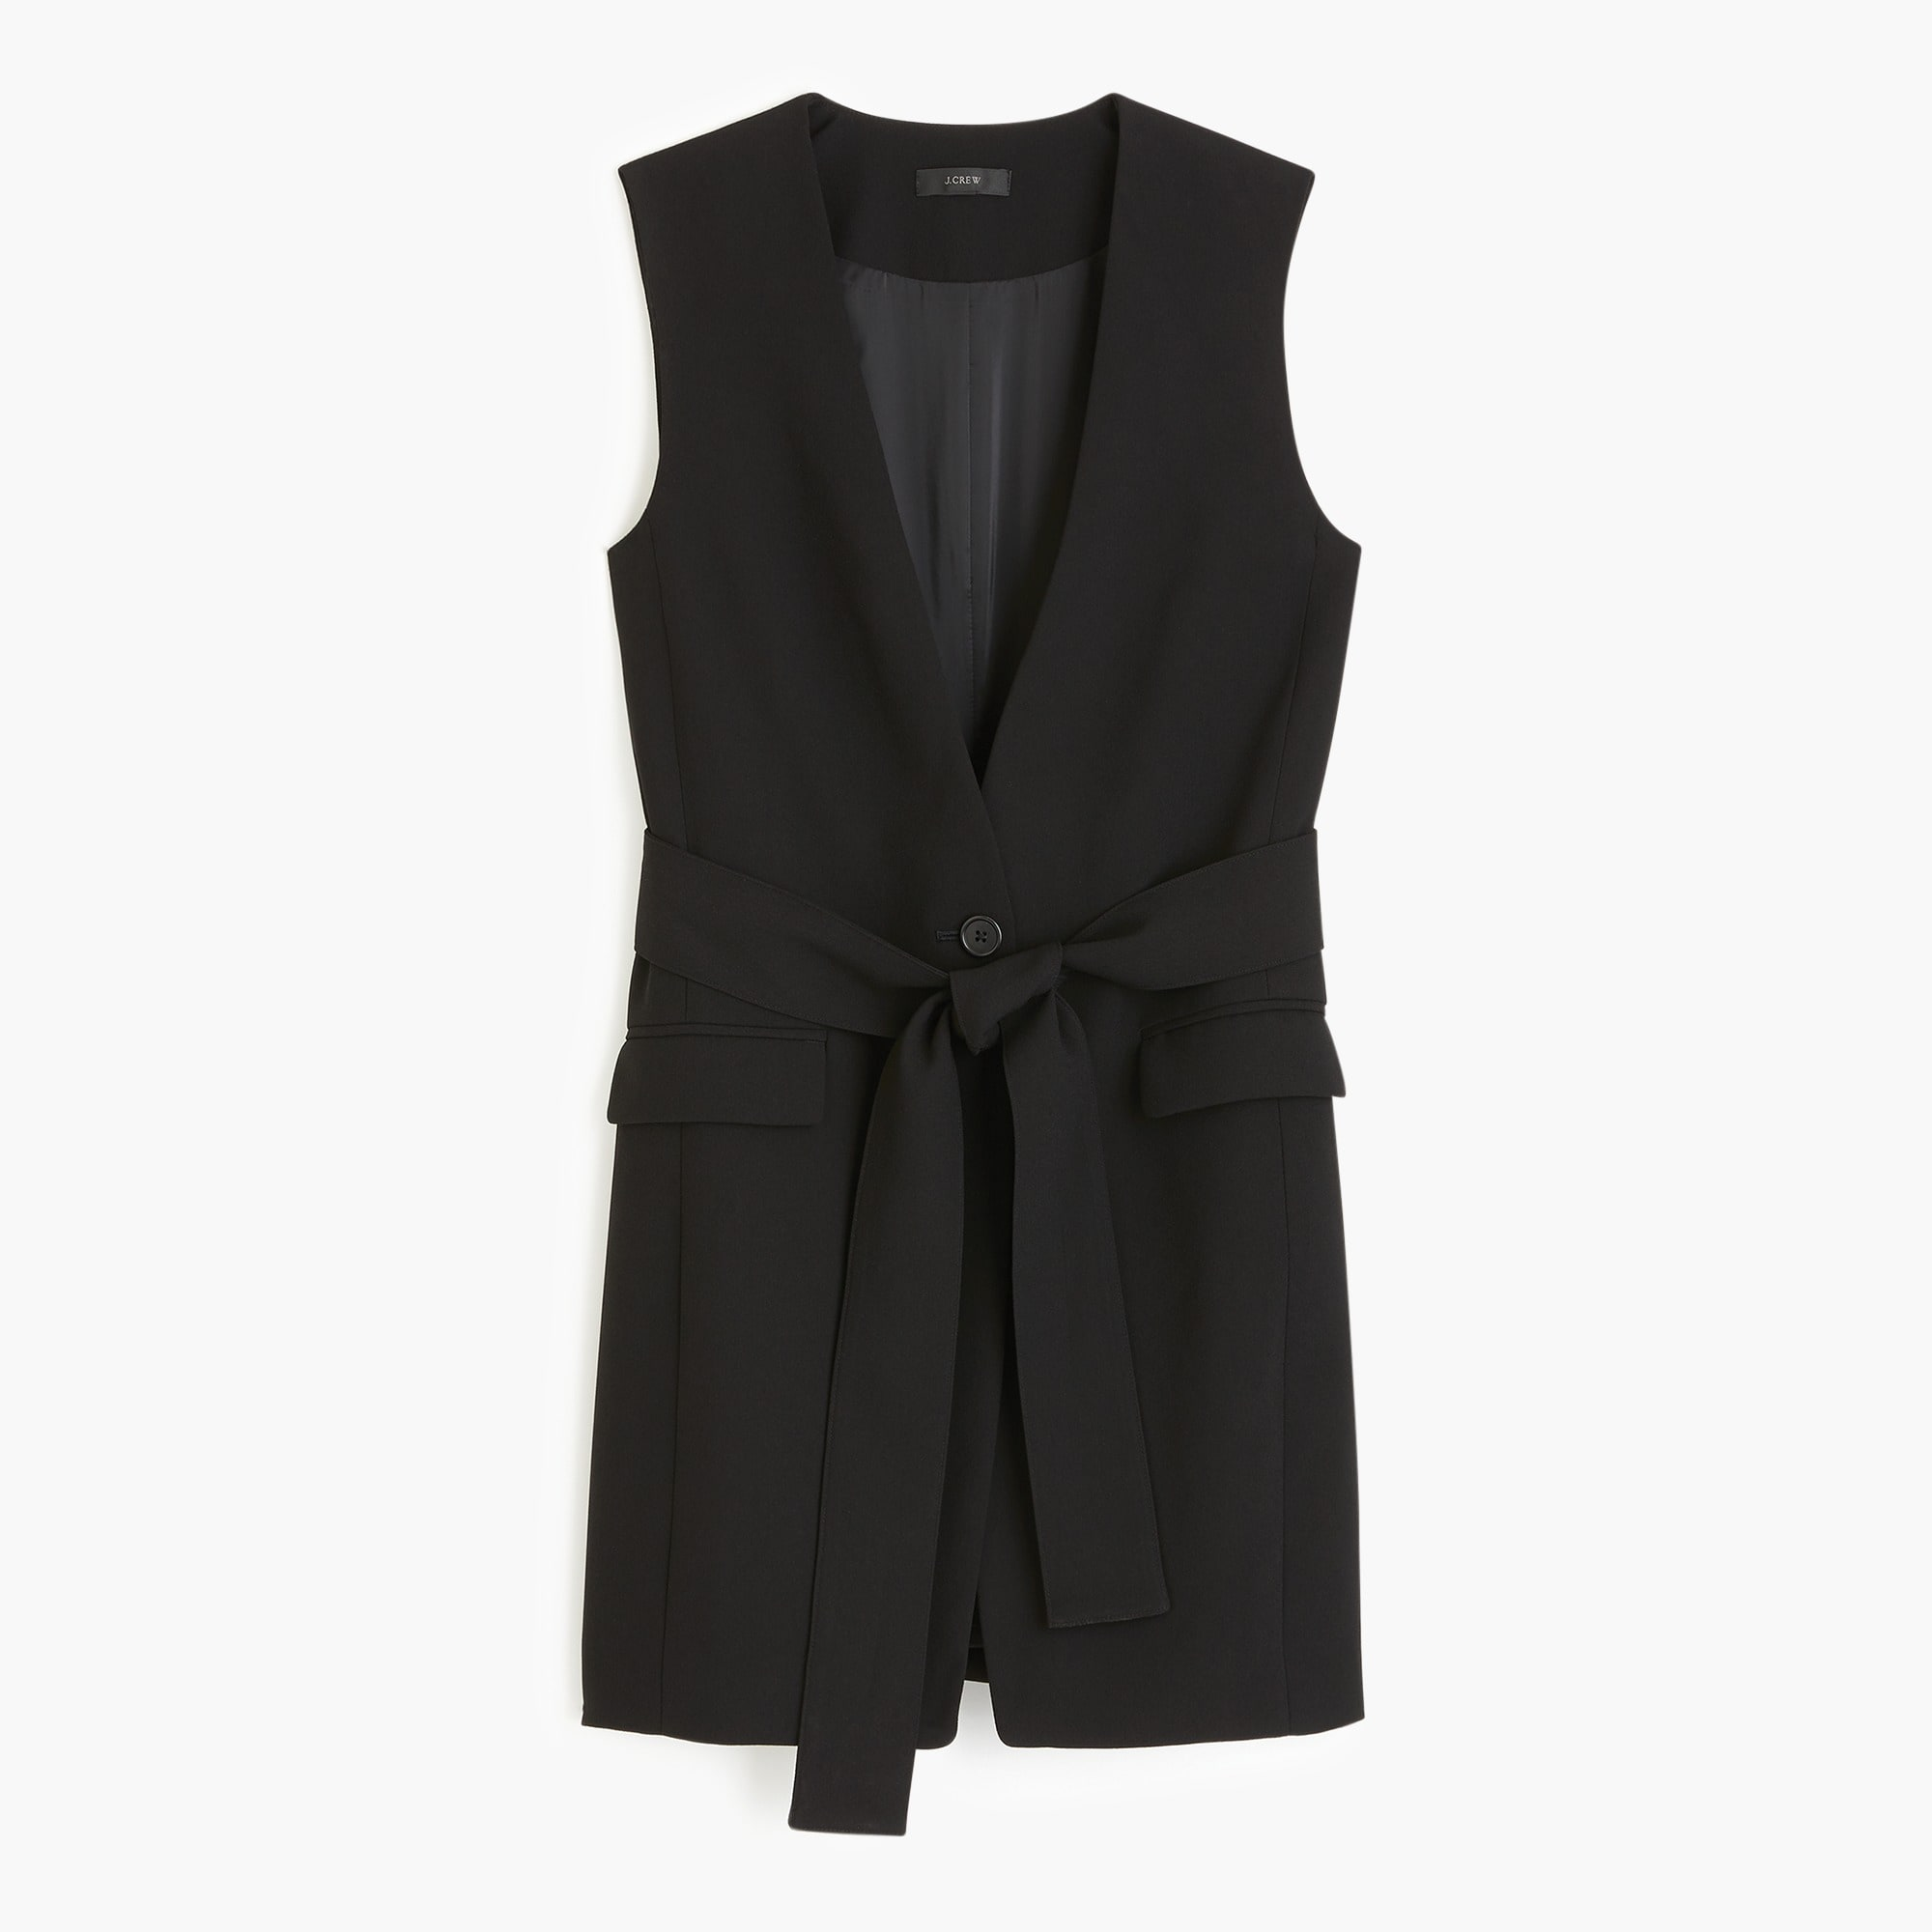 Image 6 for Sleeveless tie-waist blazer in everyday crepe